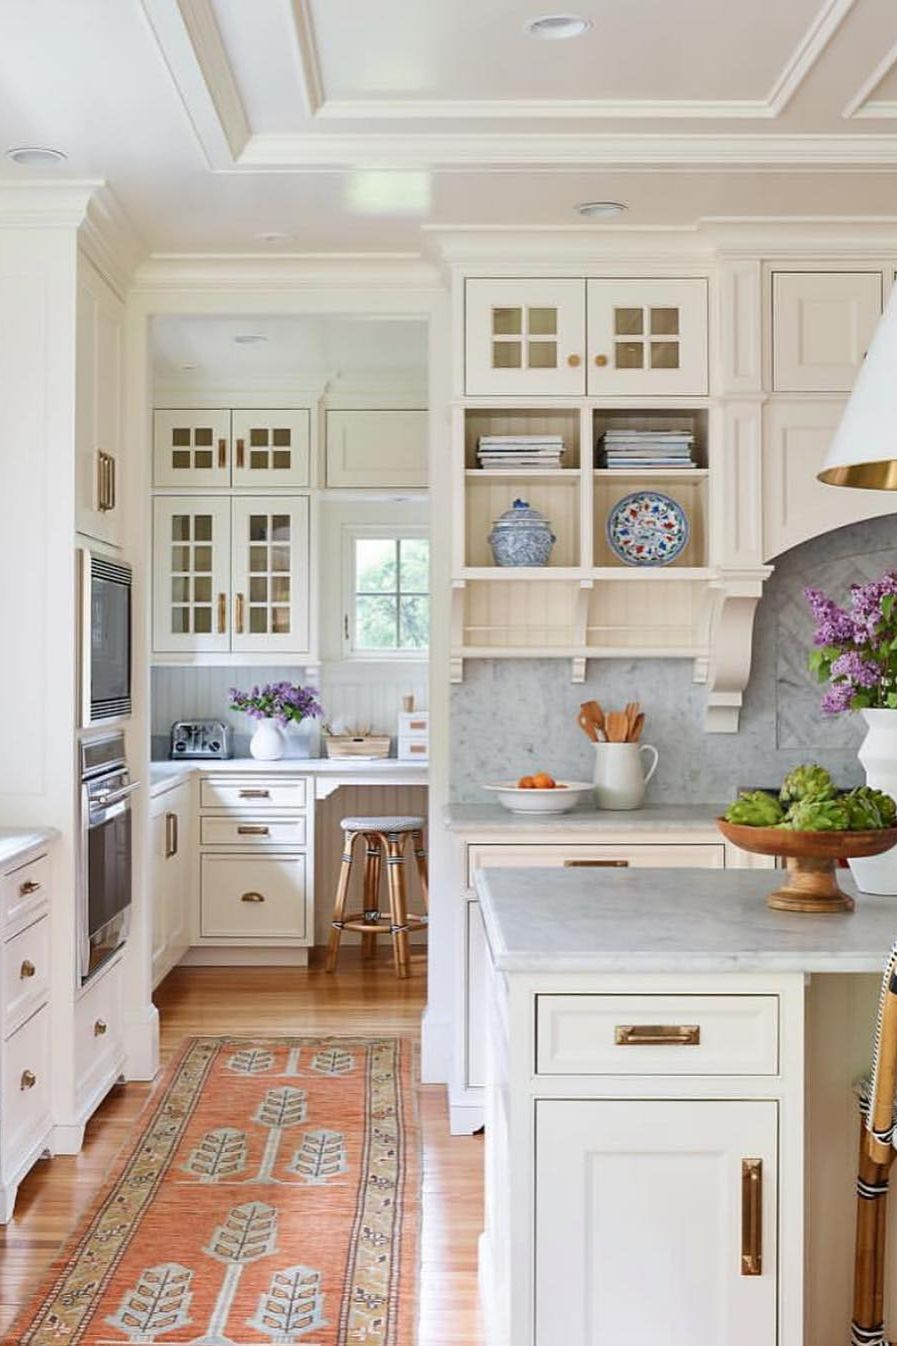 Best Ideas To Decorate Your Modern Country Kitchen Kitchen Style White Kitchen Design Kitchen Inspirations